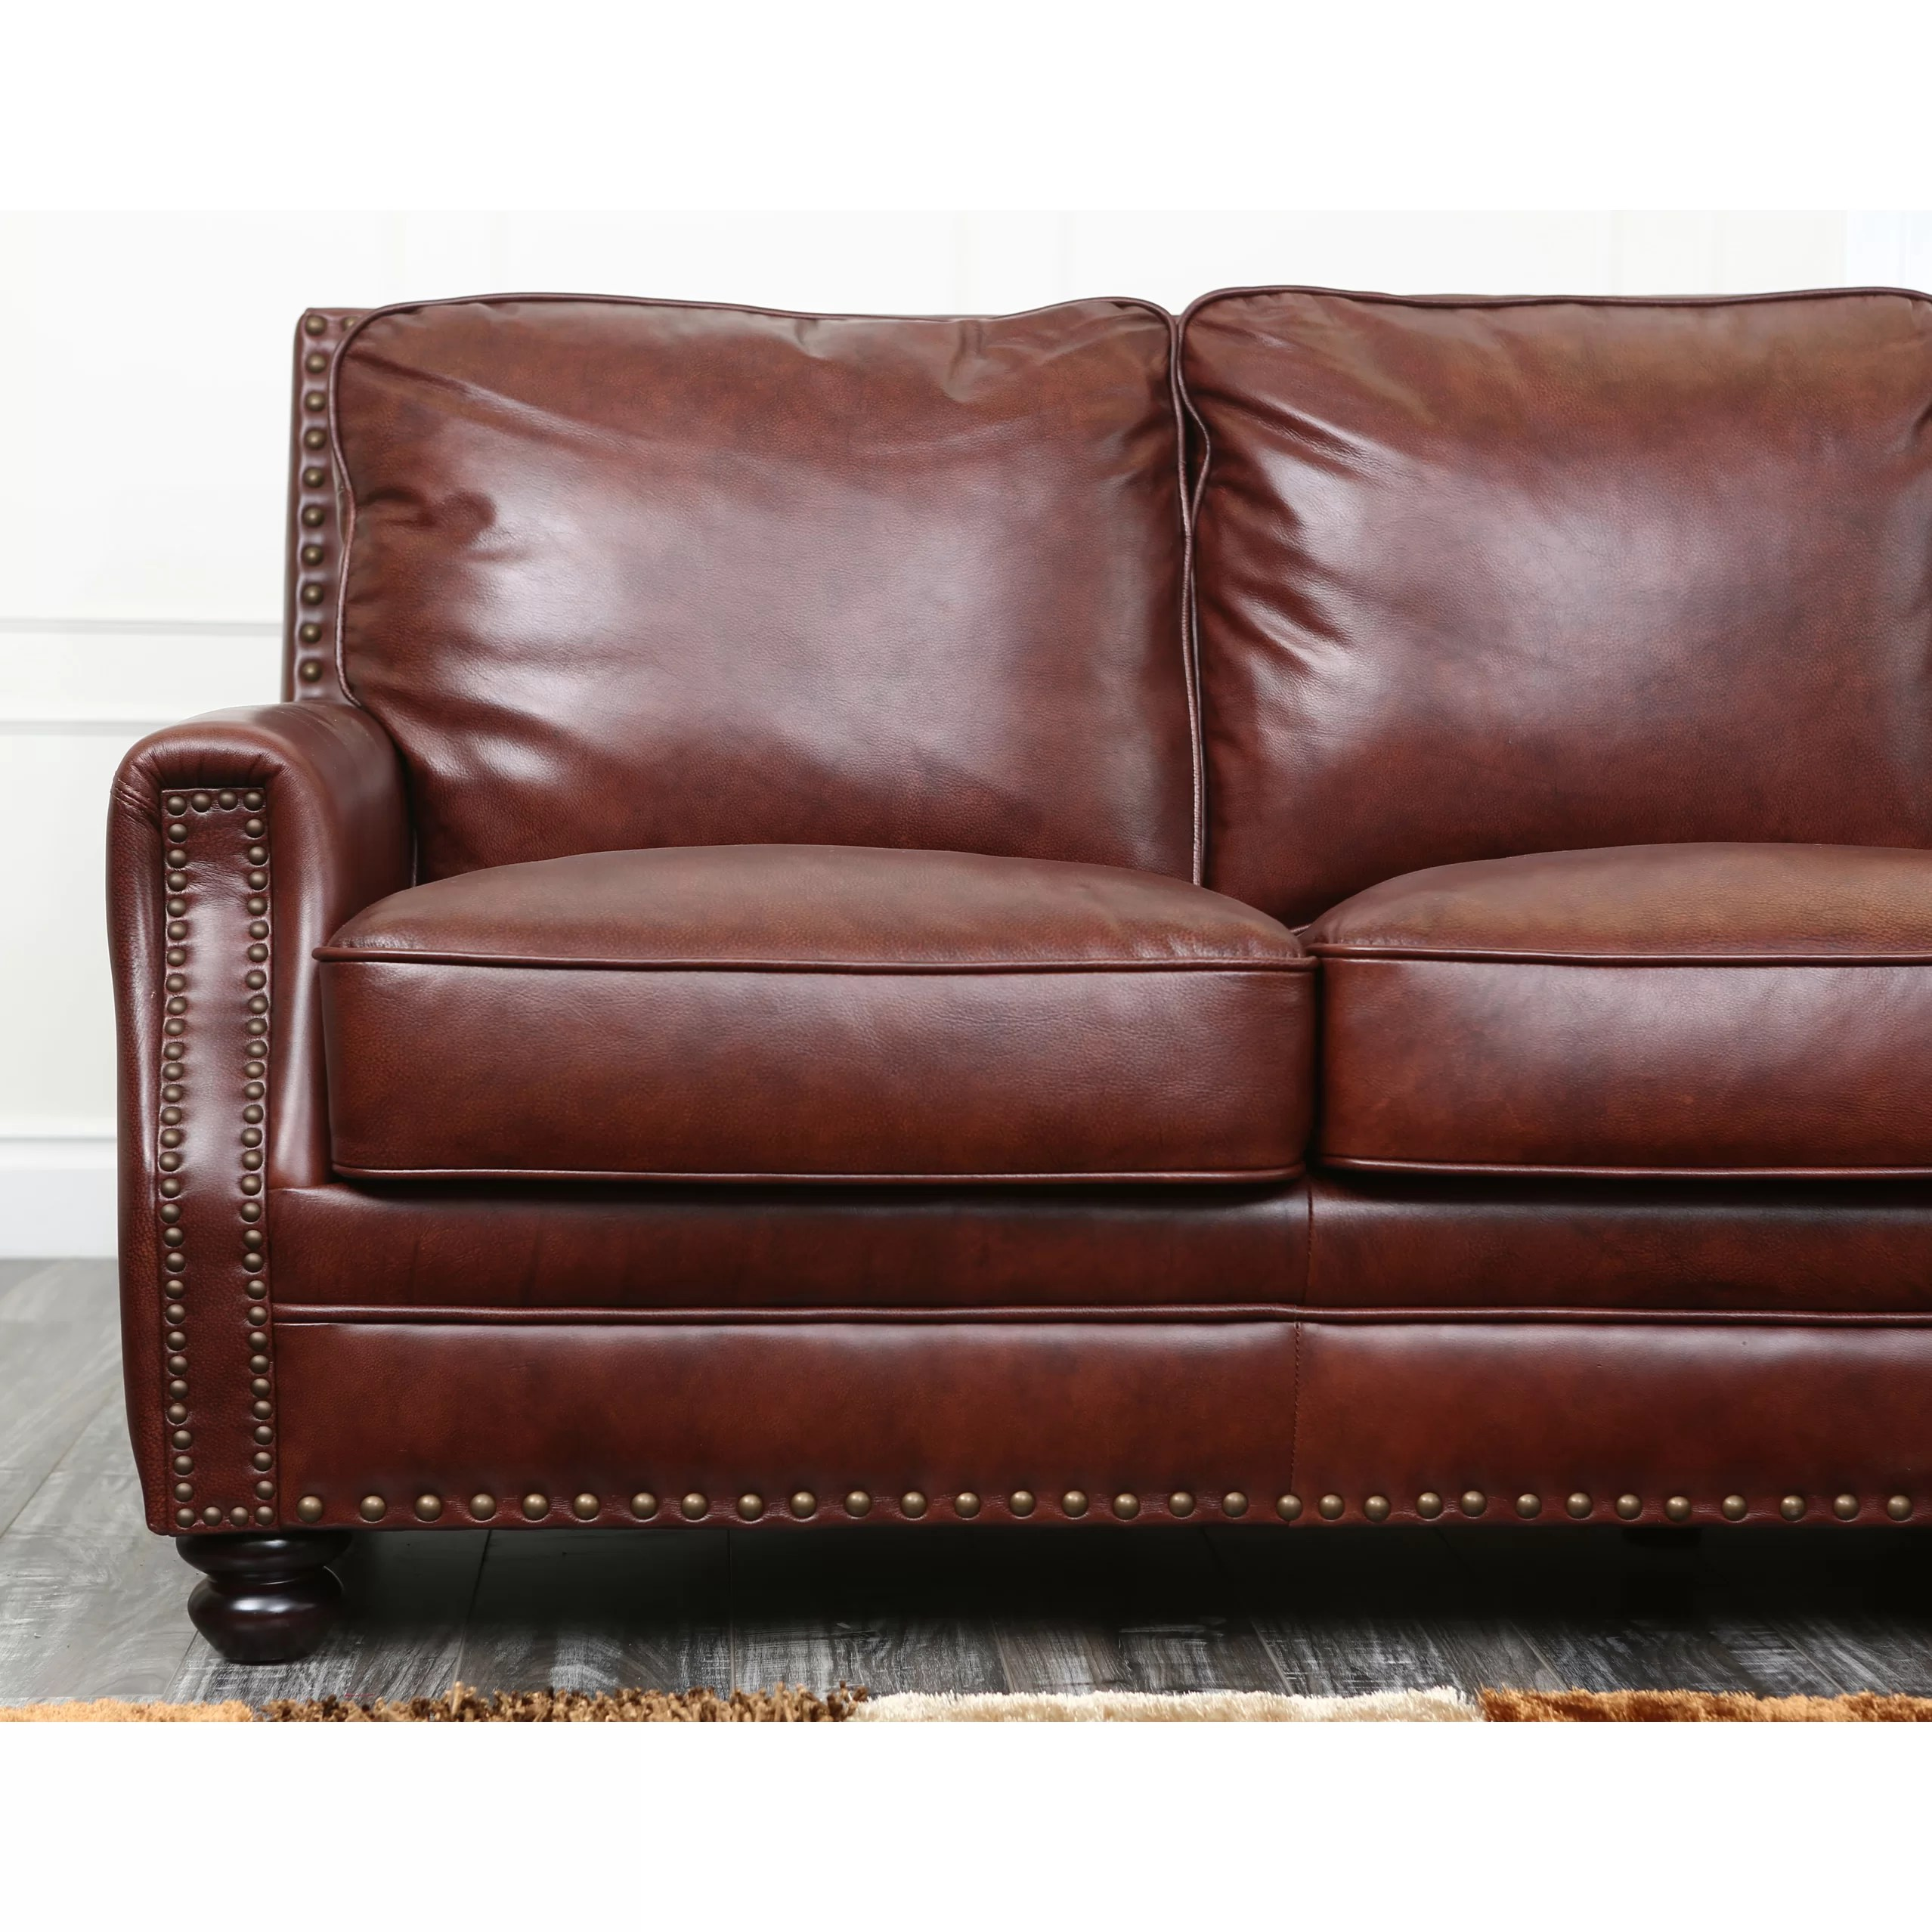 abbyson leather sofa reviews white brocade living bel air and wayfair